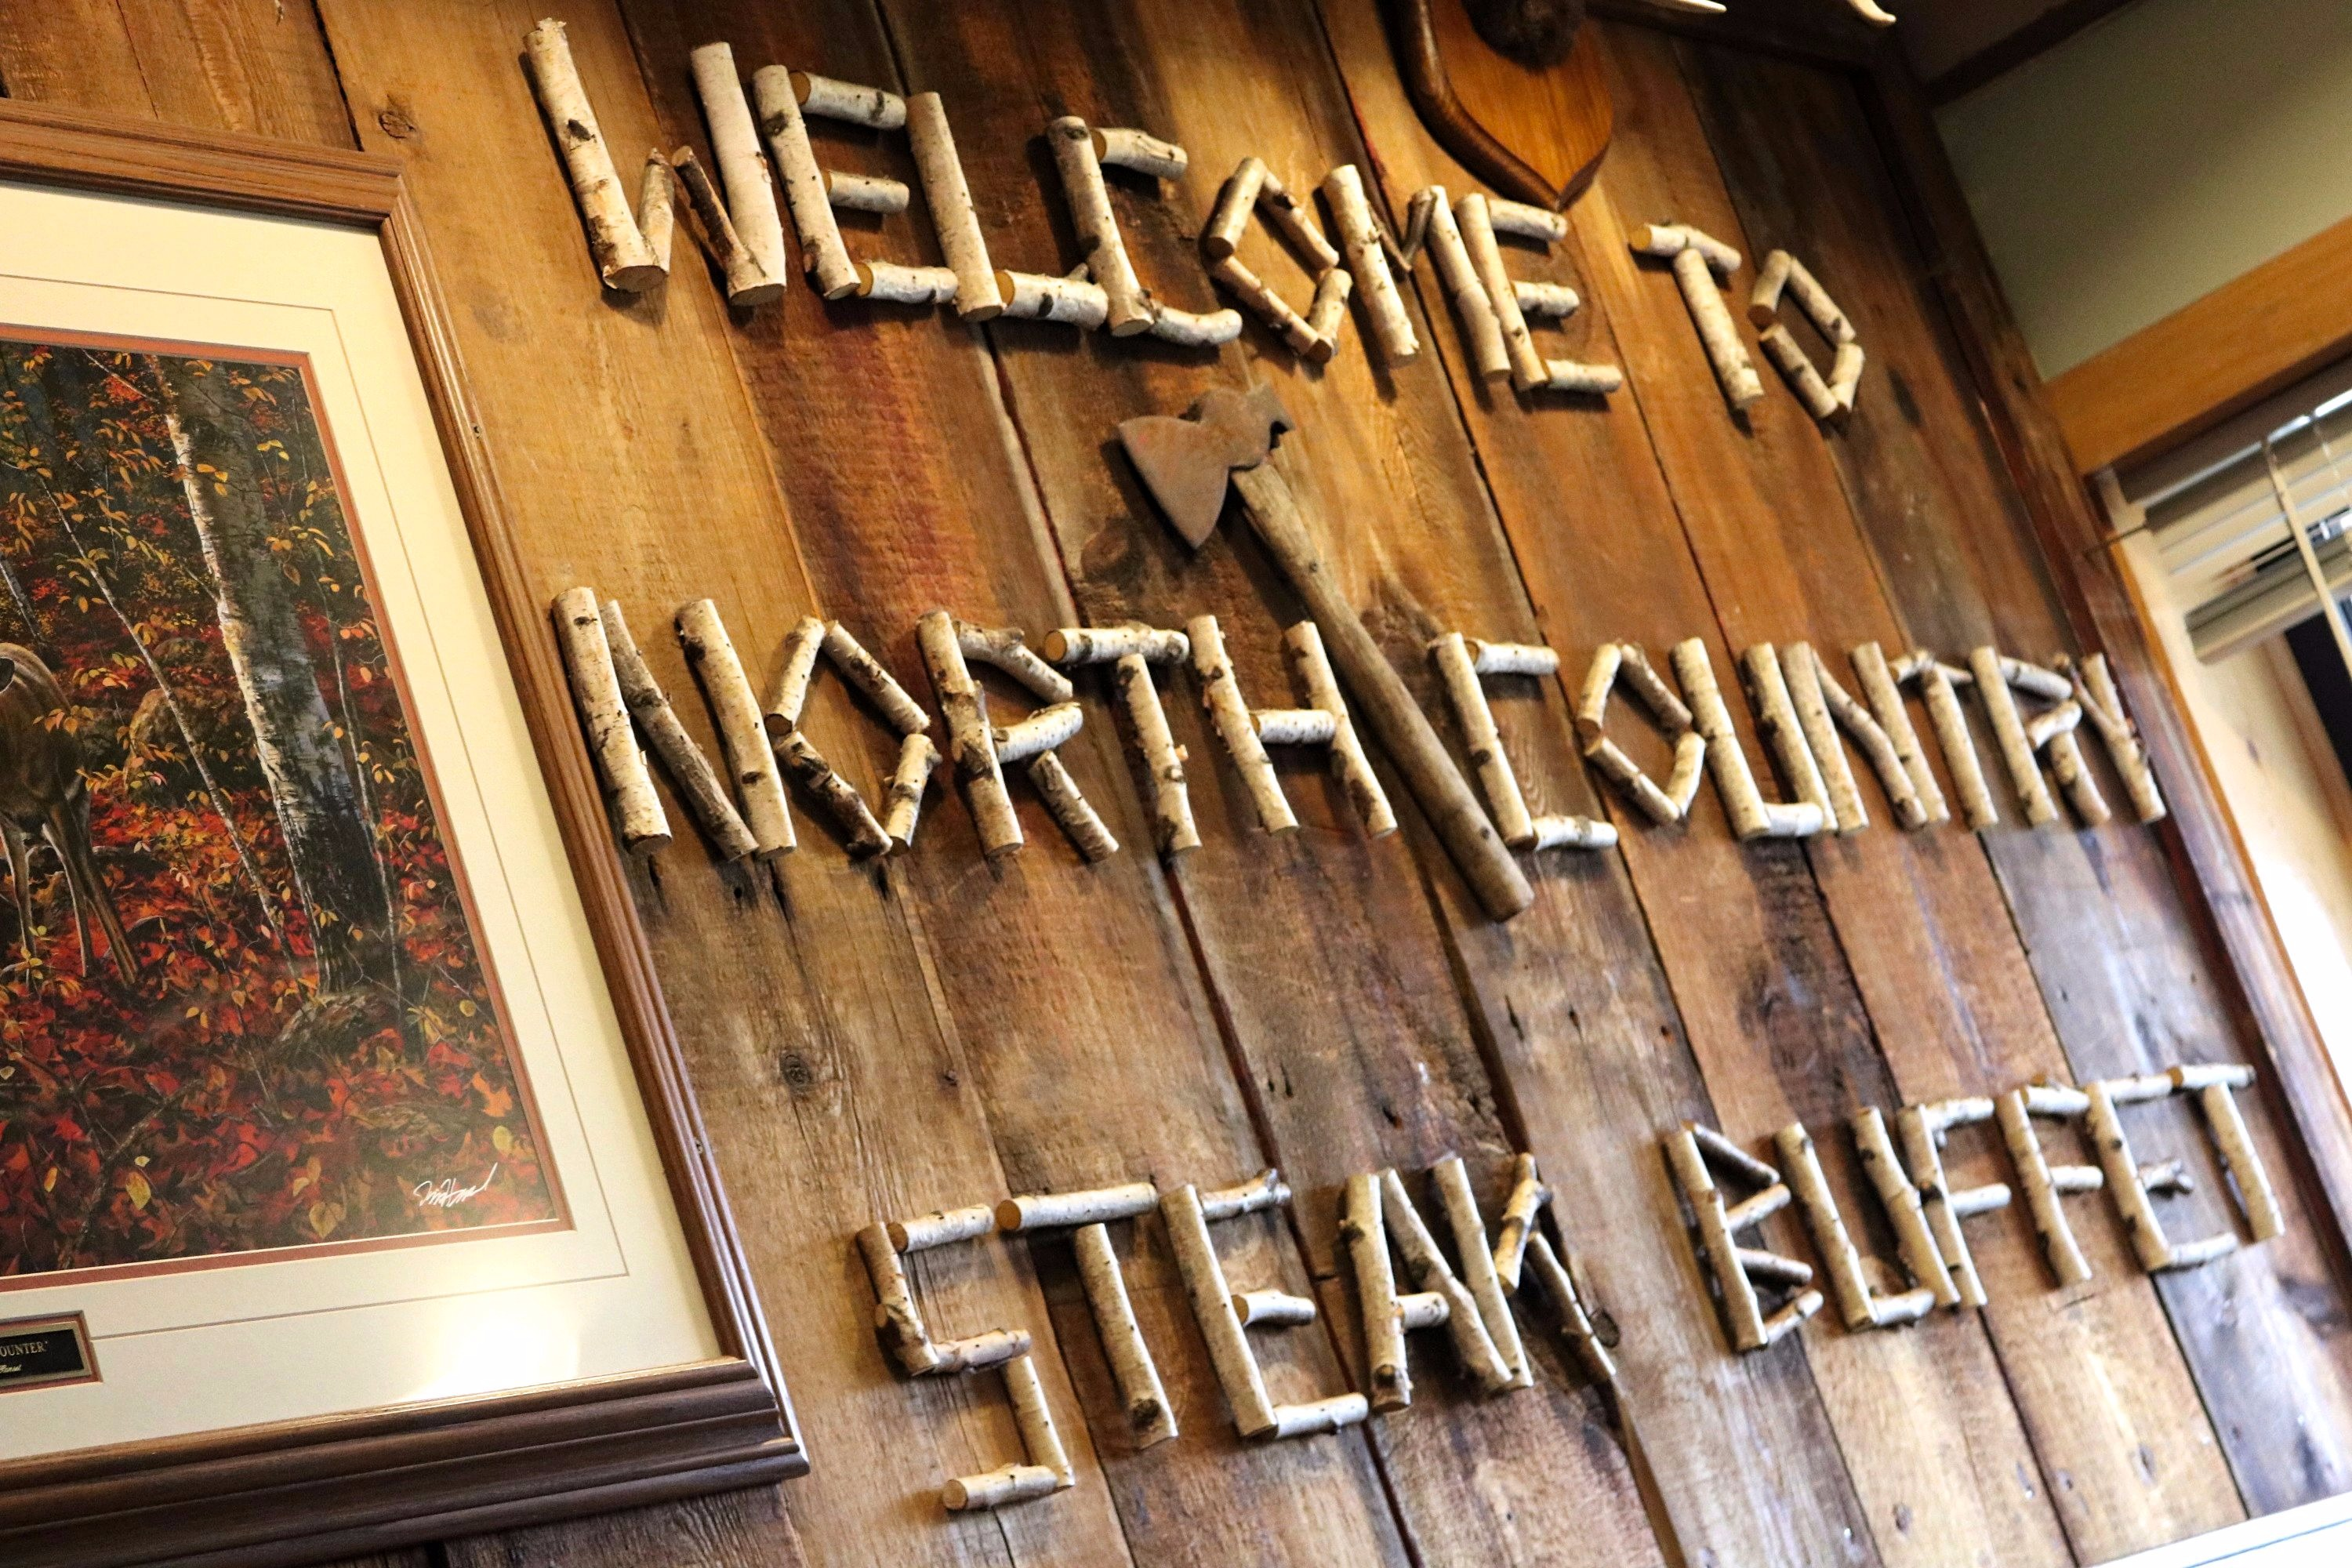 Win it Wednesday At N.C.S.B! @ North Country Steak Buffet